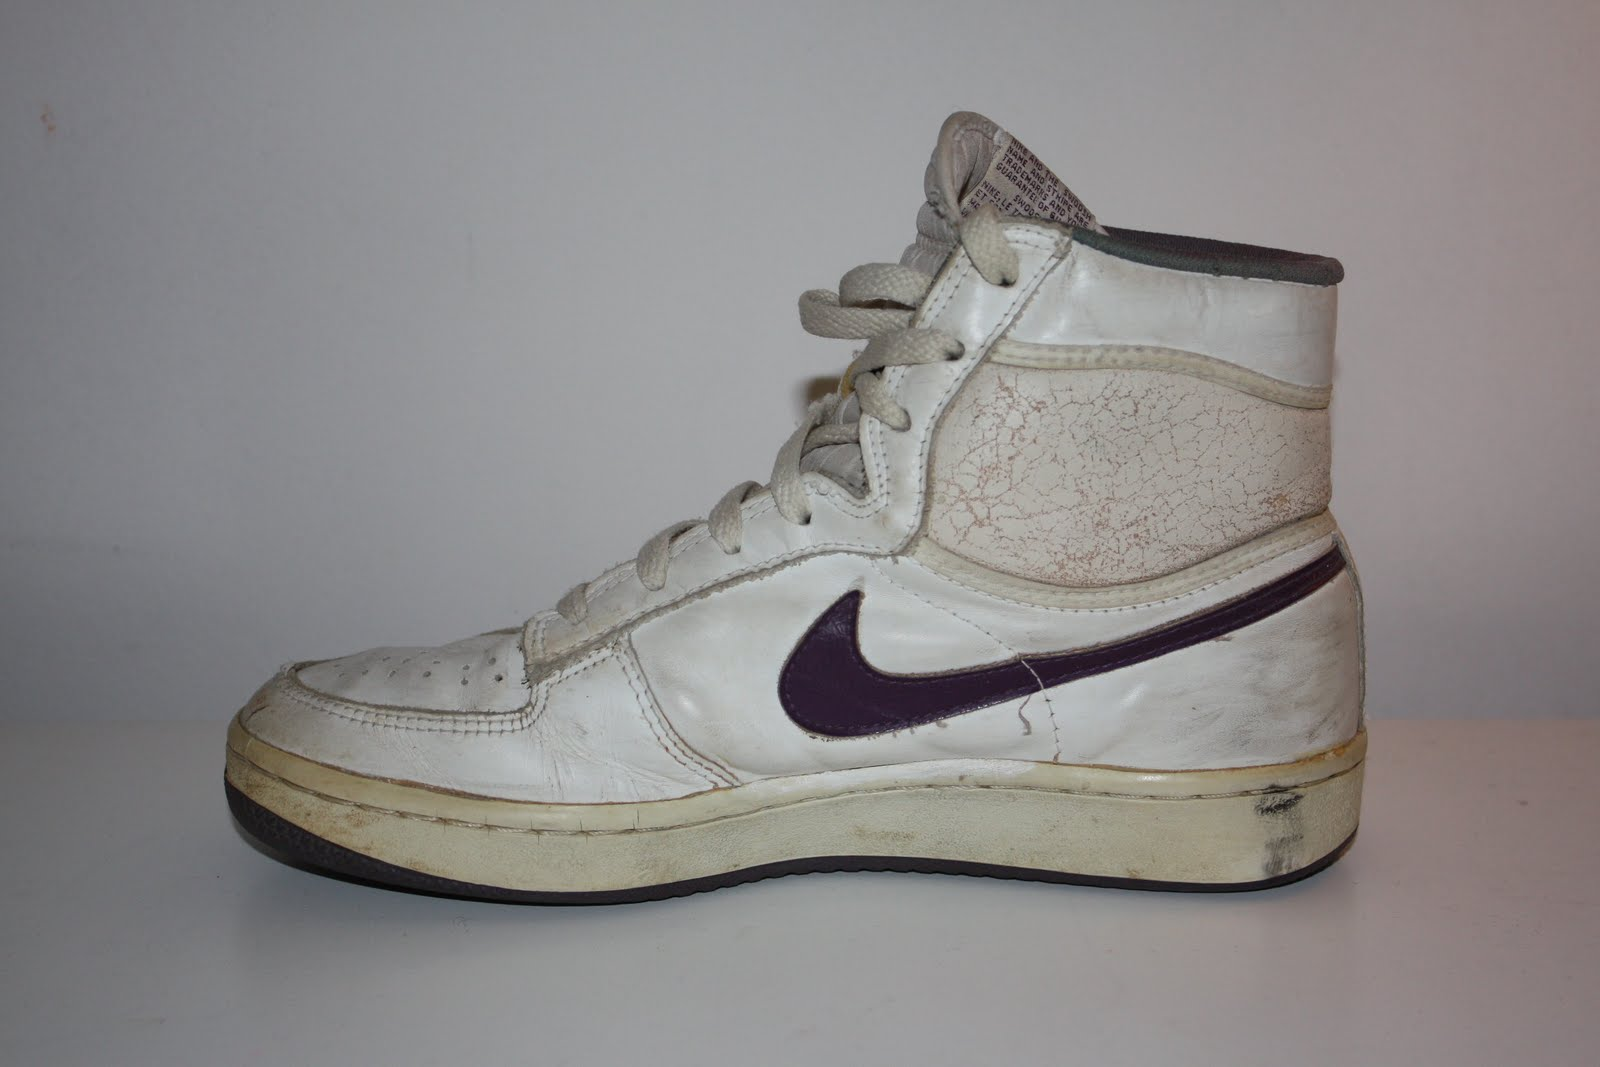 newest ca77d 30c65 my vintage sneakers Nike Sky Force Hi (1984)